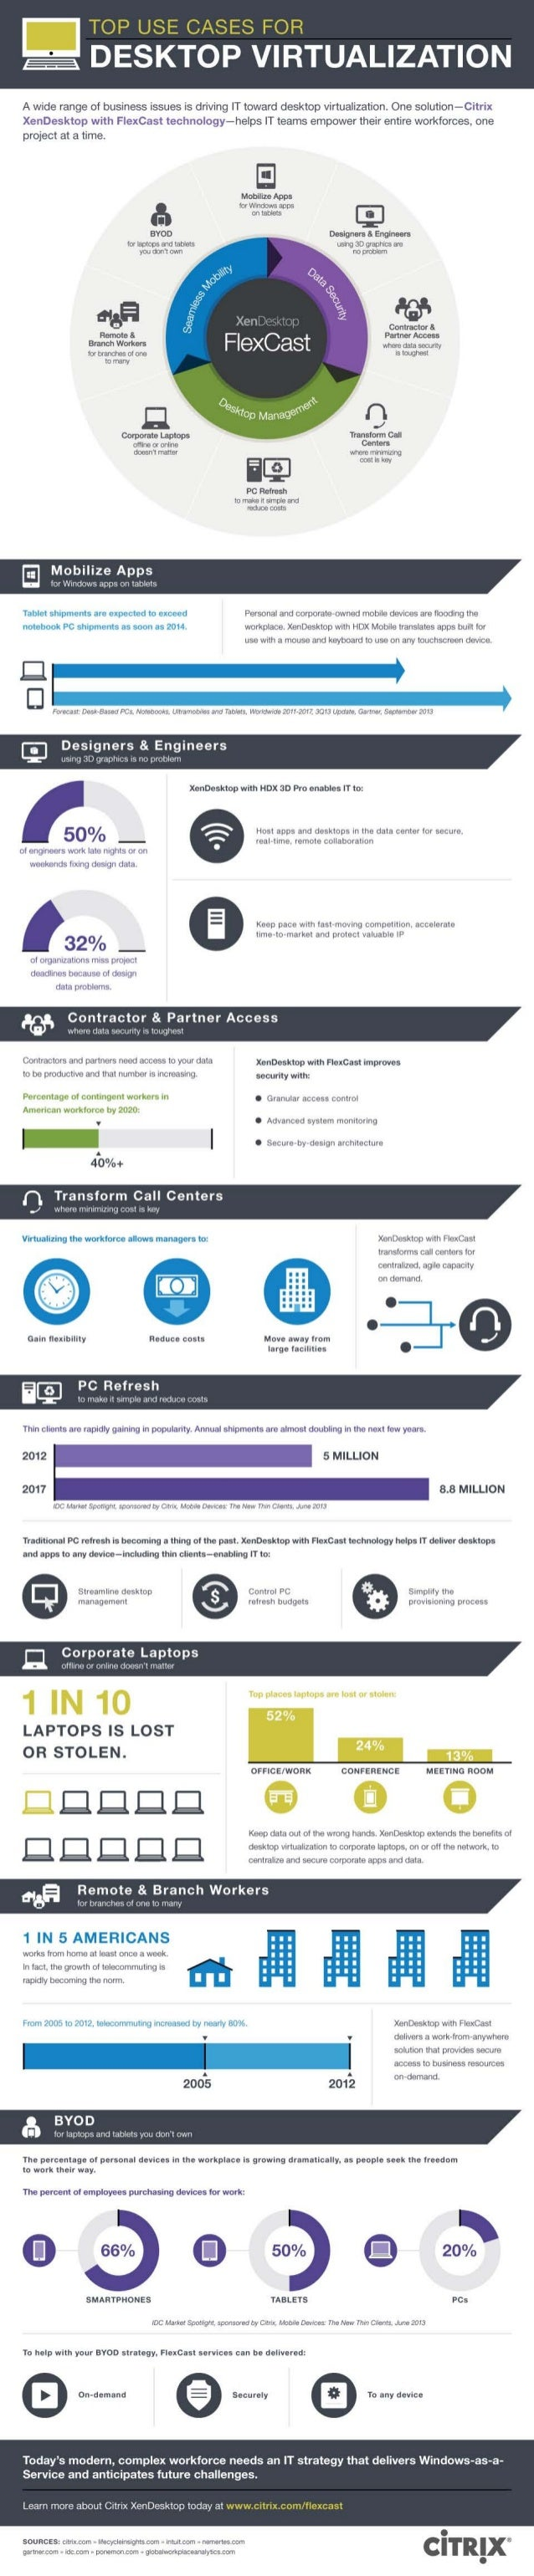 INFOGRAPHIC - Top 8 Use Cases for Desktop Virtualization